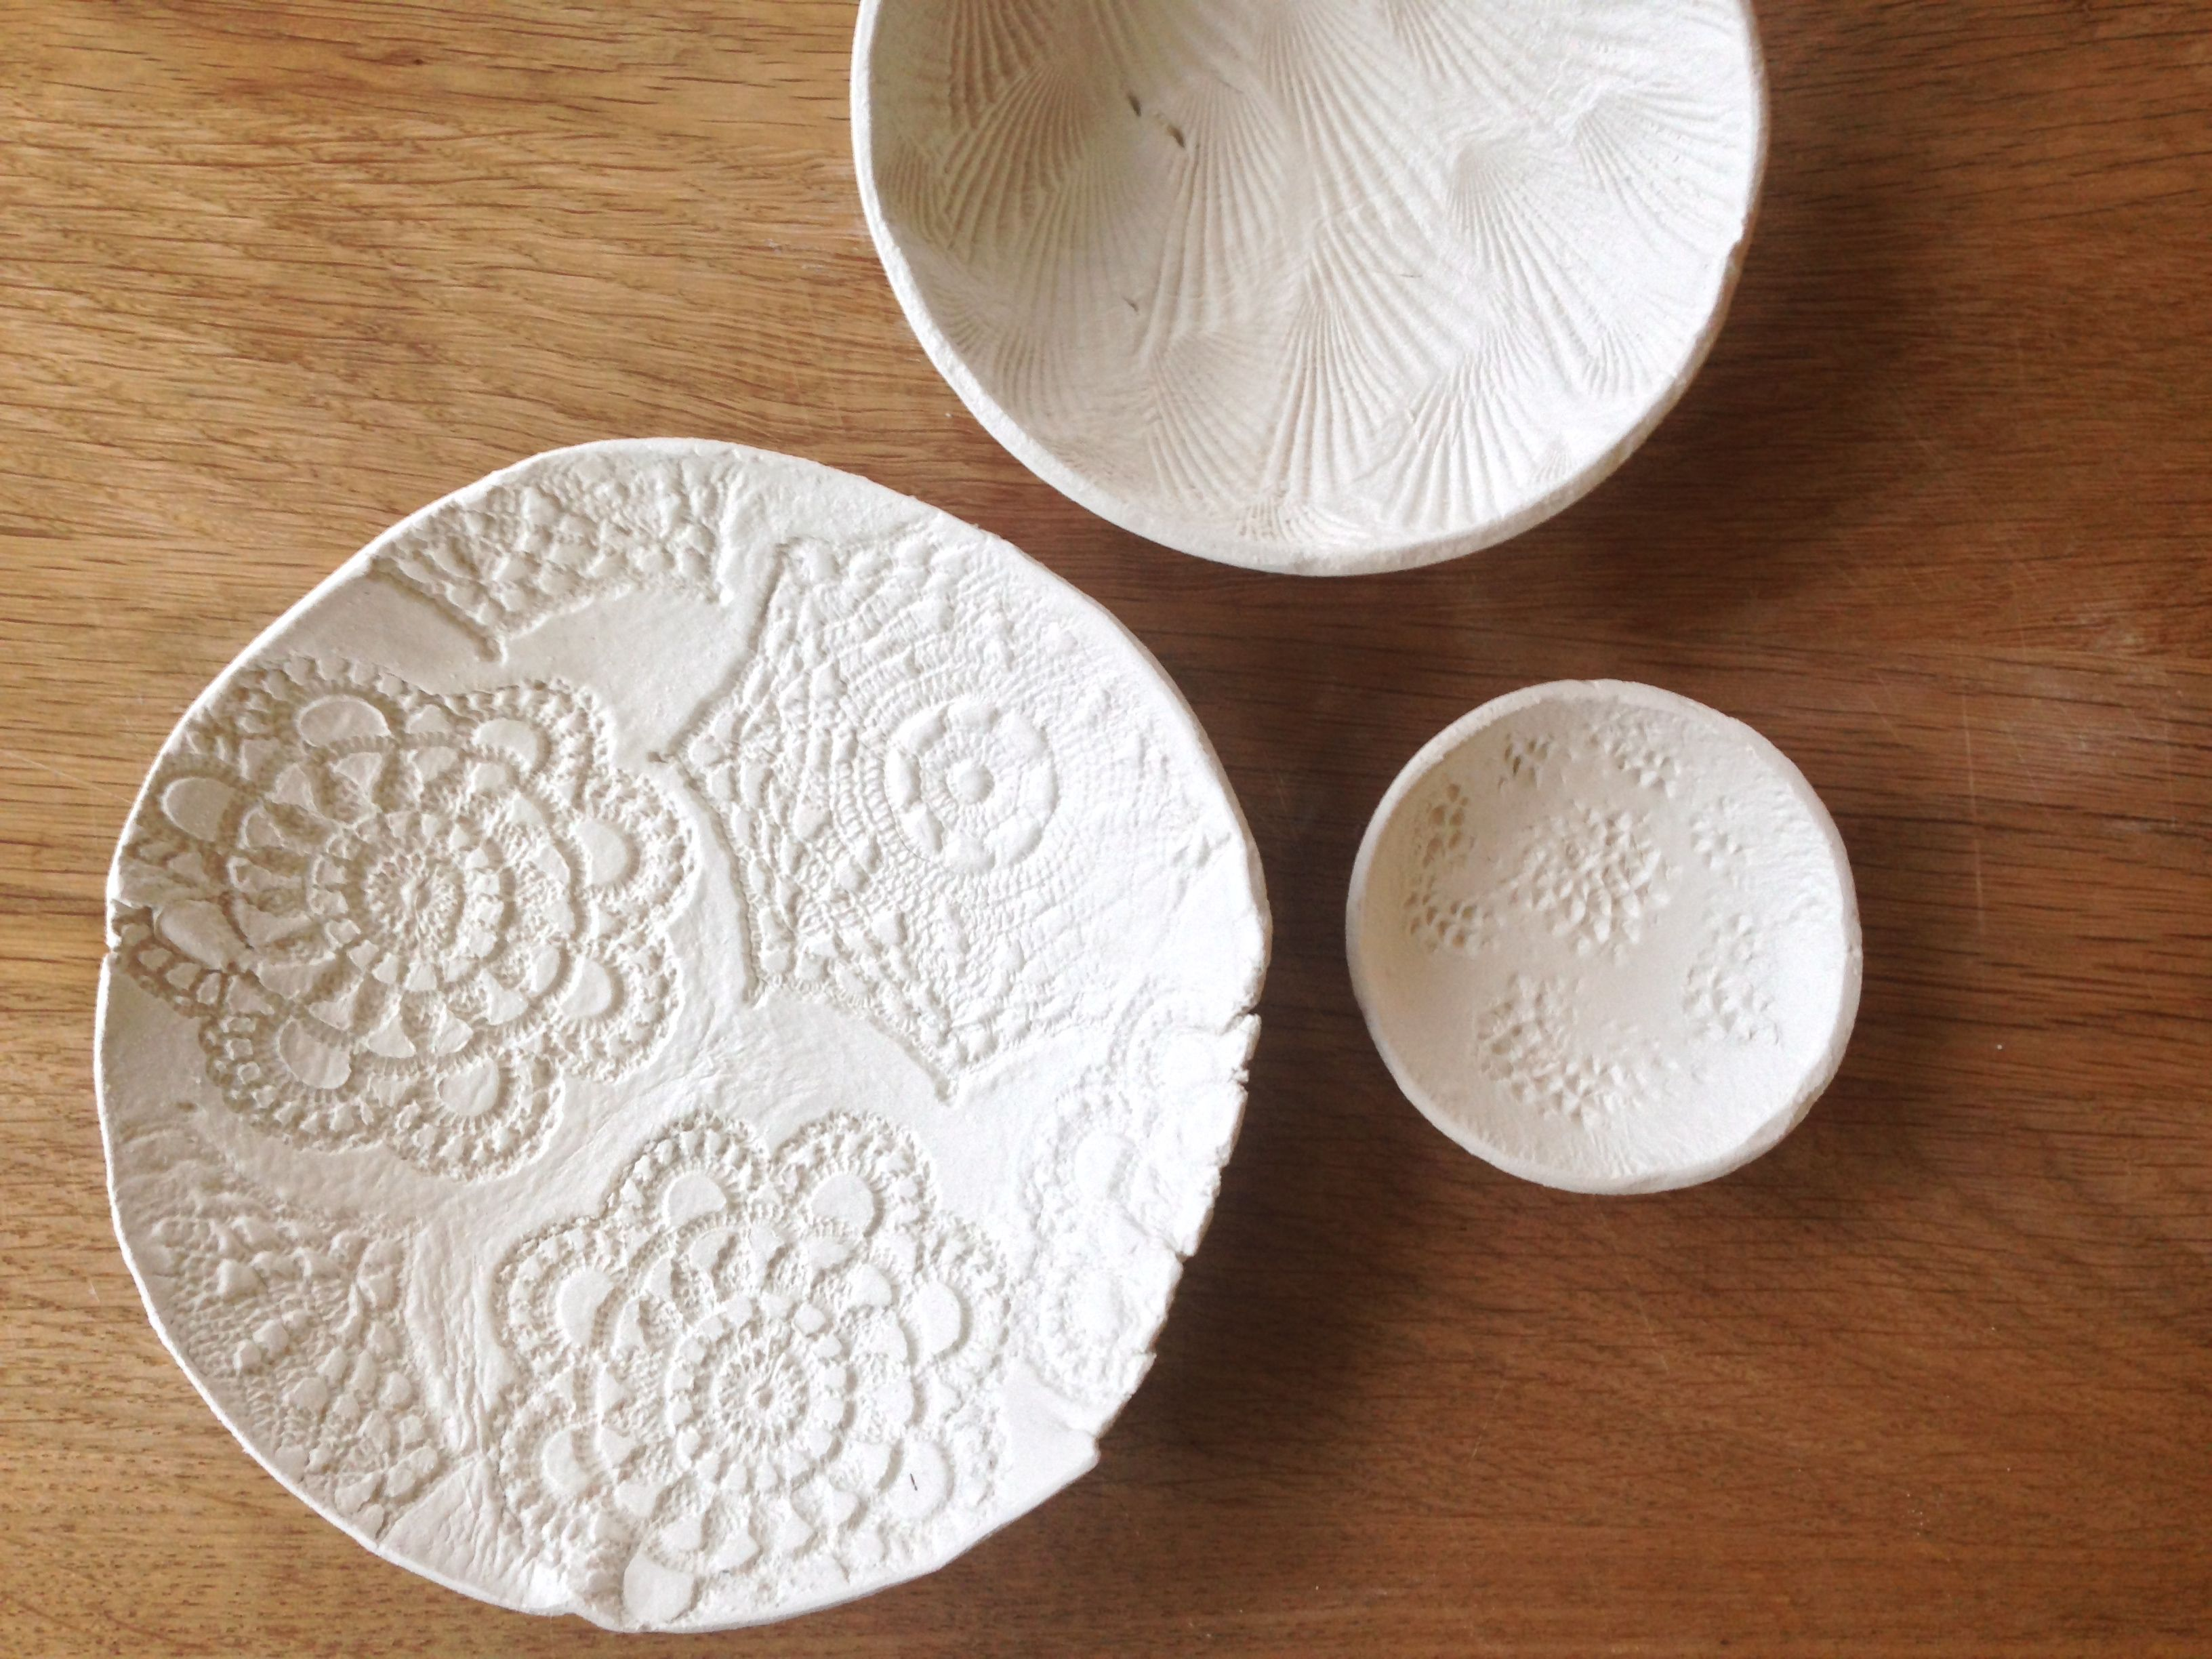 Air Dry Clay Bowls Made By Embossing Crochet Coasters Shells And Pine Cones Check Out Tutorial On